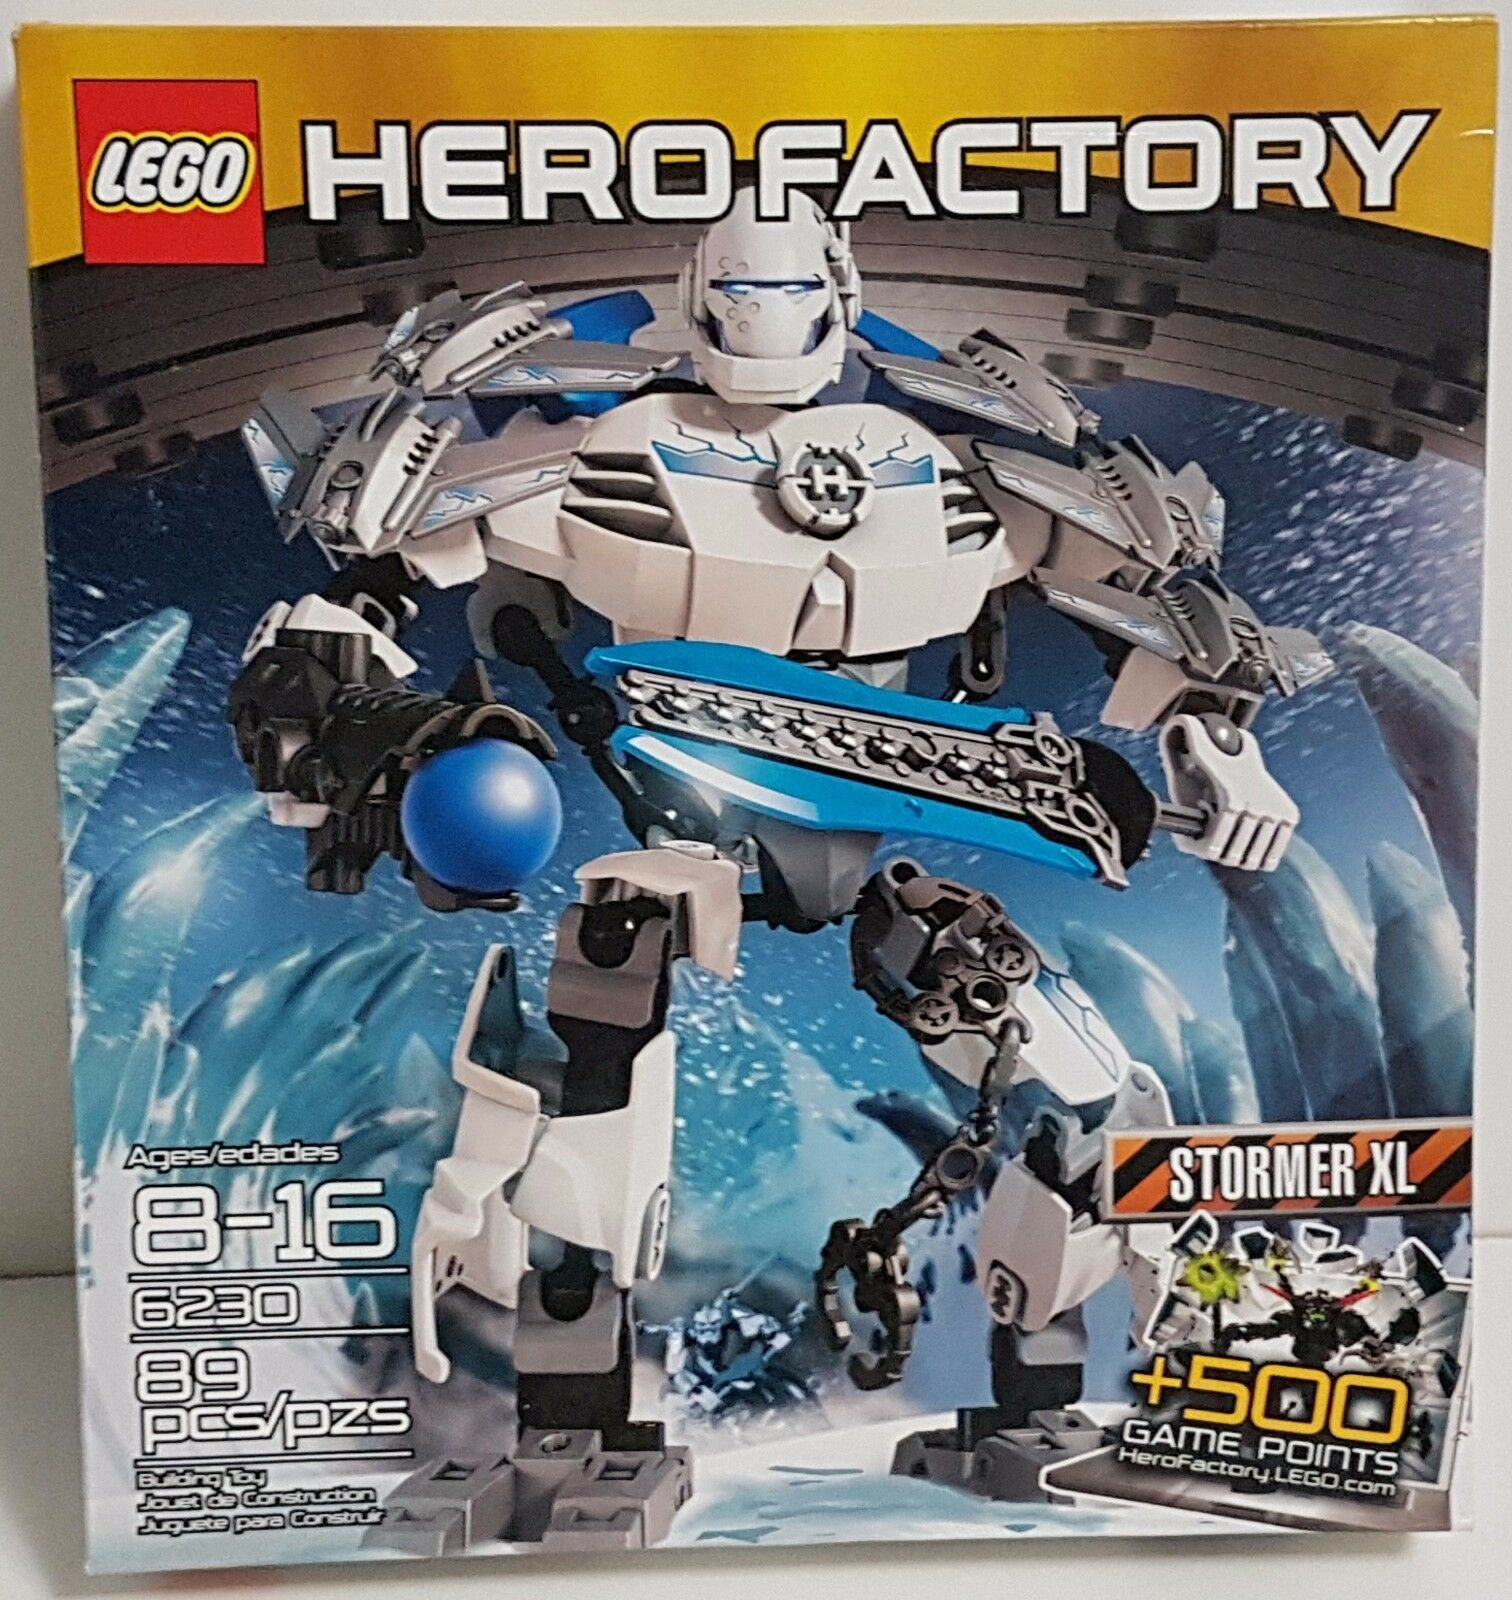 LEGO Hero Factory Stormer XL Set  6230 nuovo & Sealed - NO CANADIAN IMPORT FEES  compra nuovo economico